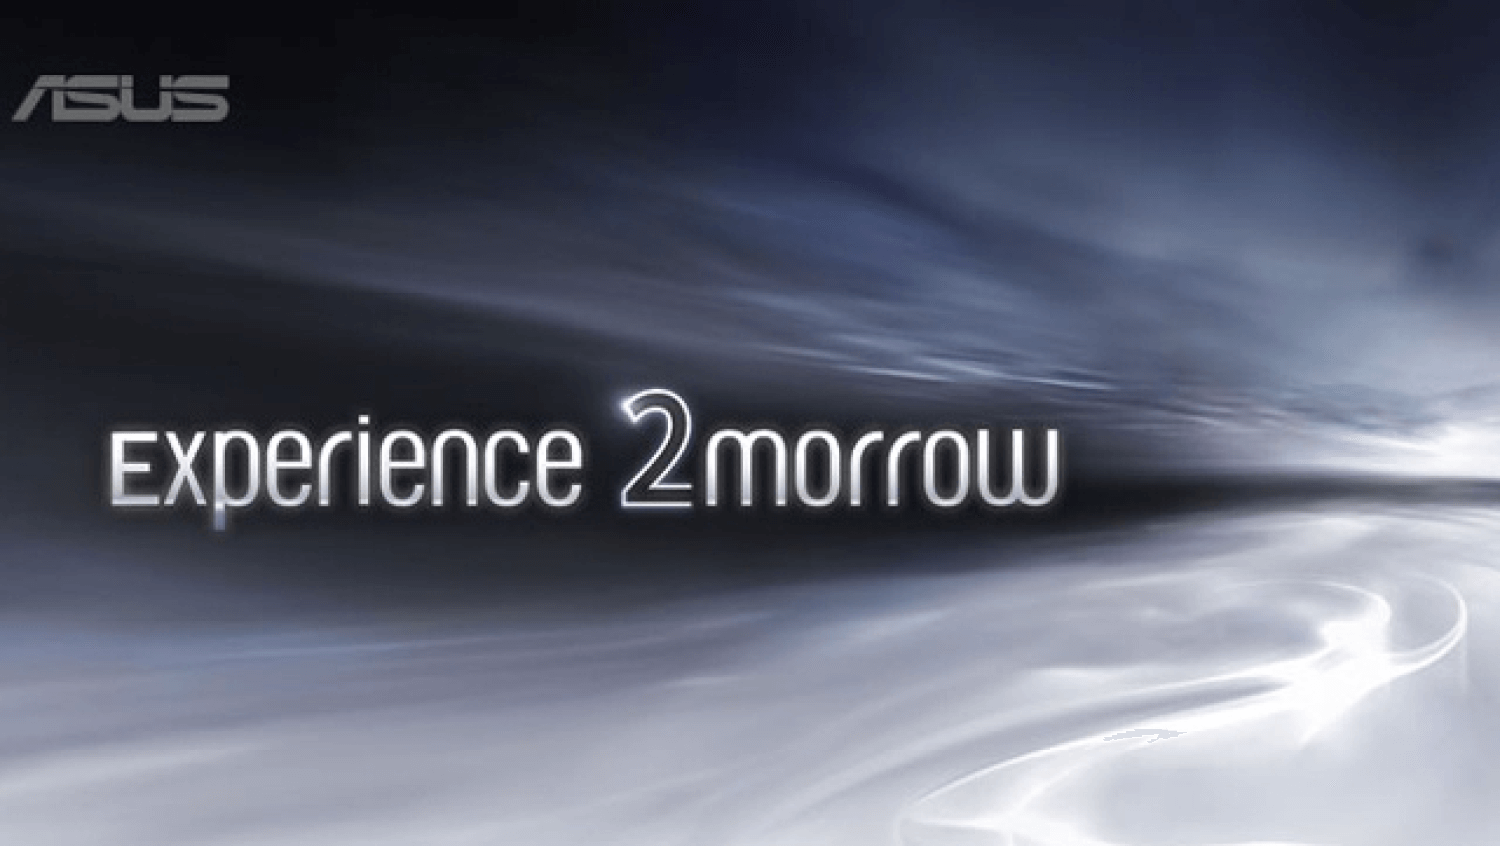 Asus experience 2morrow